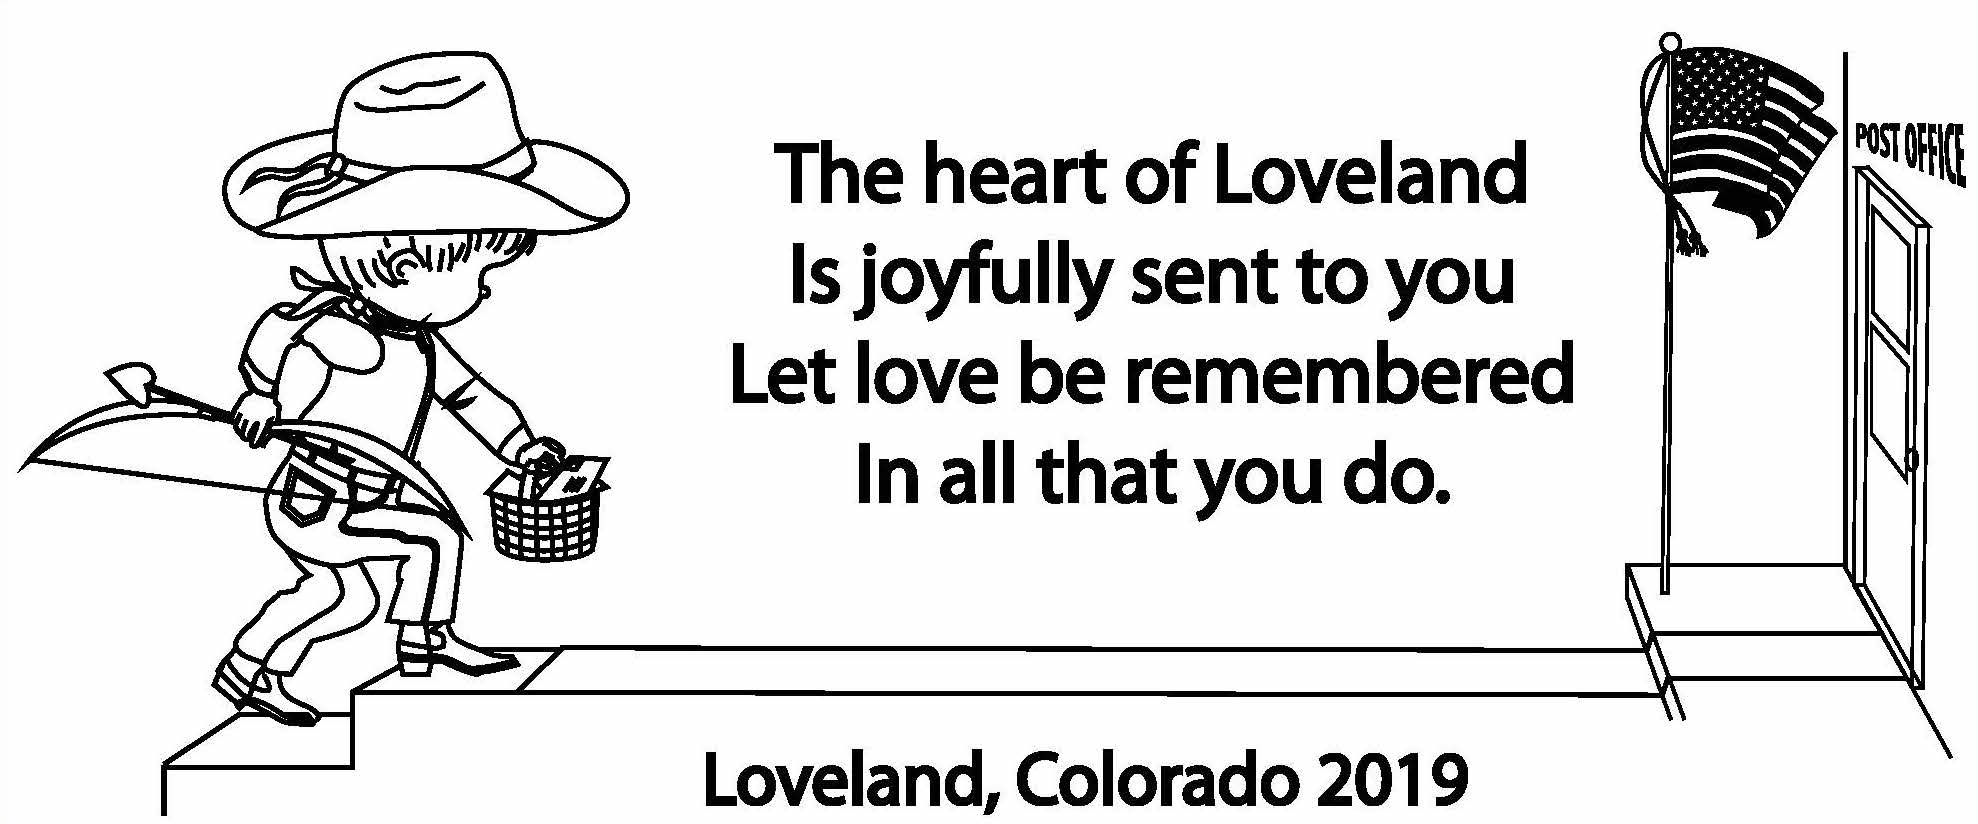 This design will be stamped onto Valentine's Day mail sent through Loveland this year.